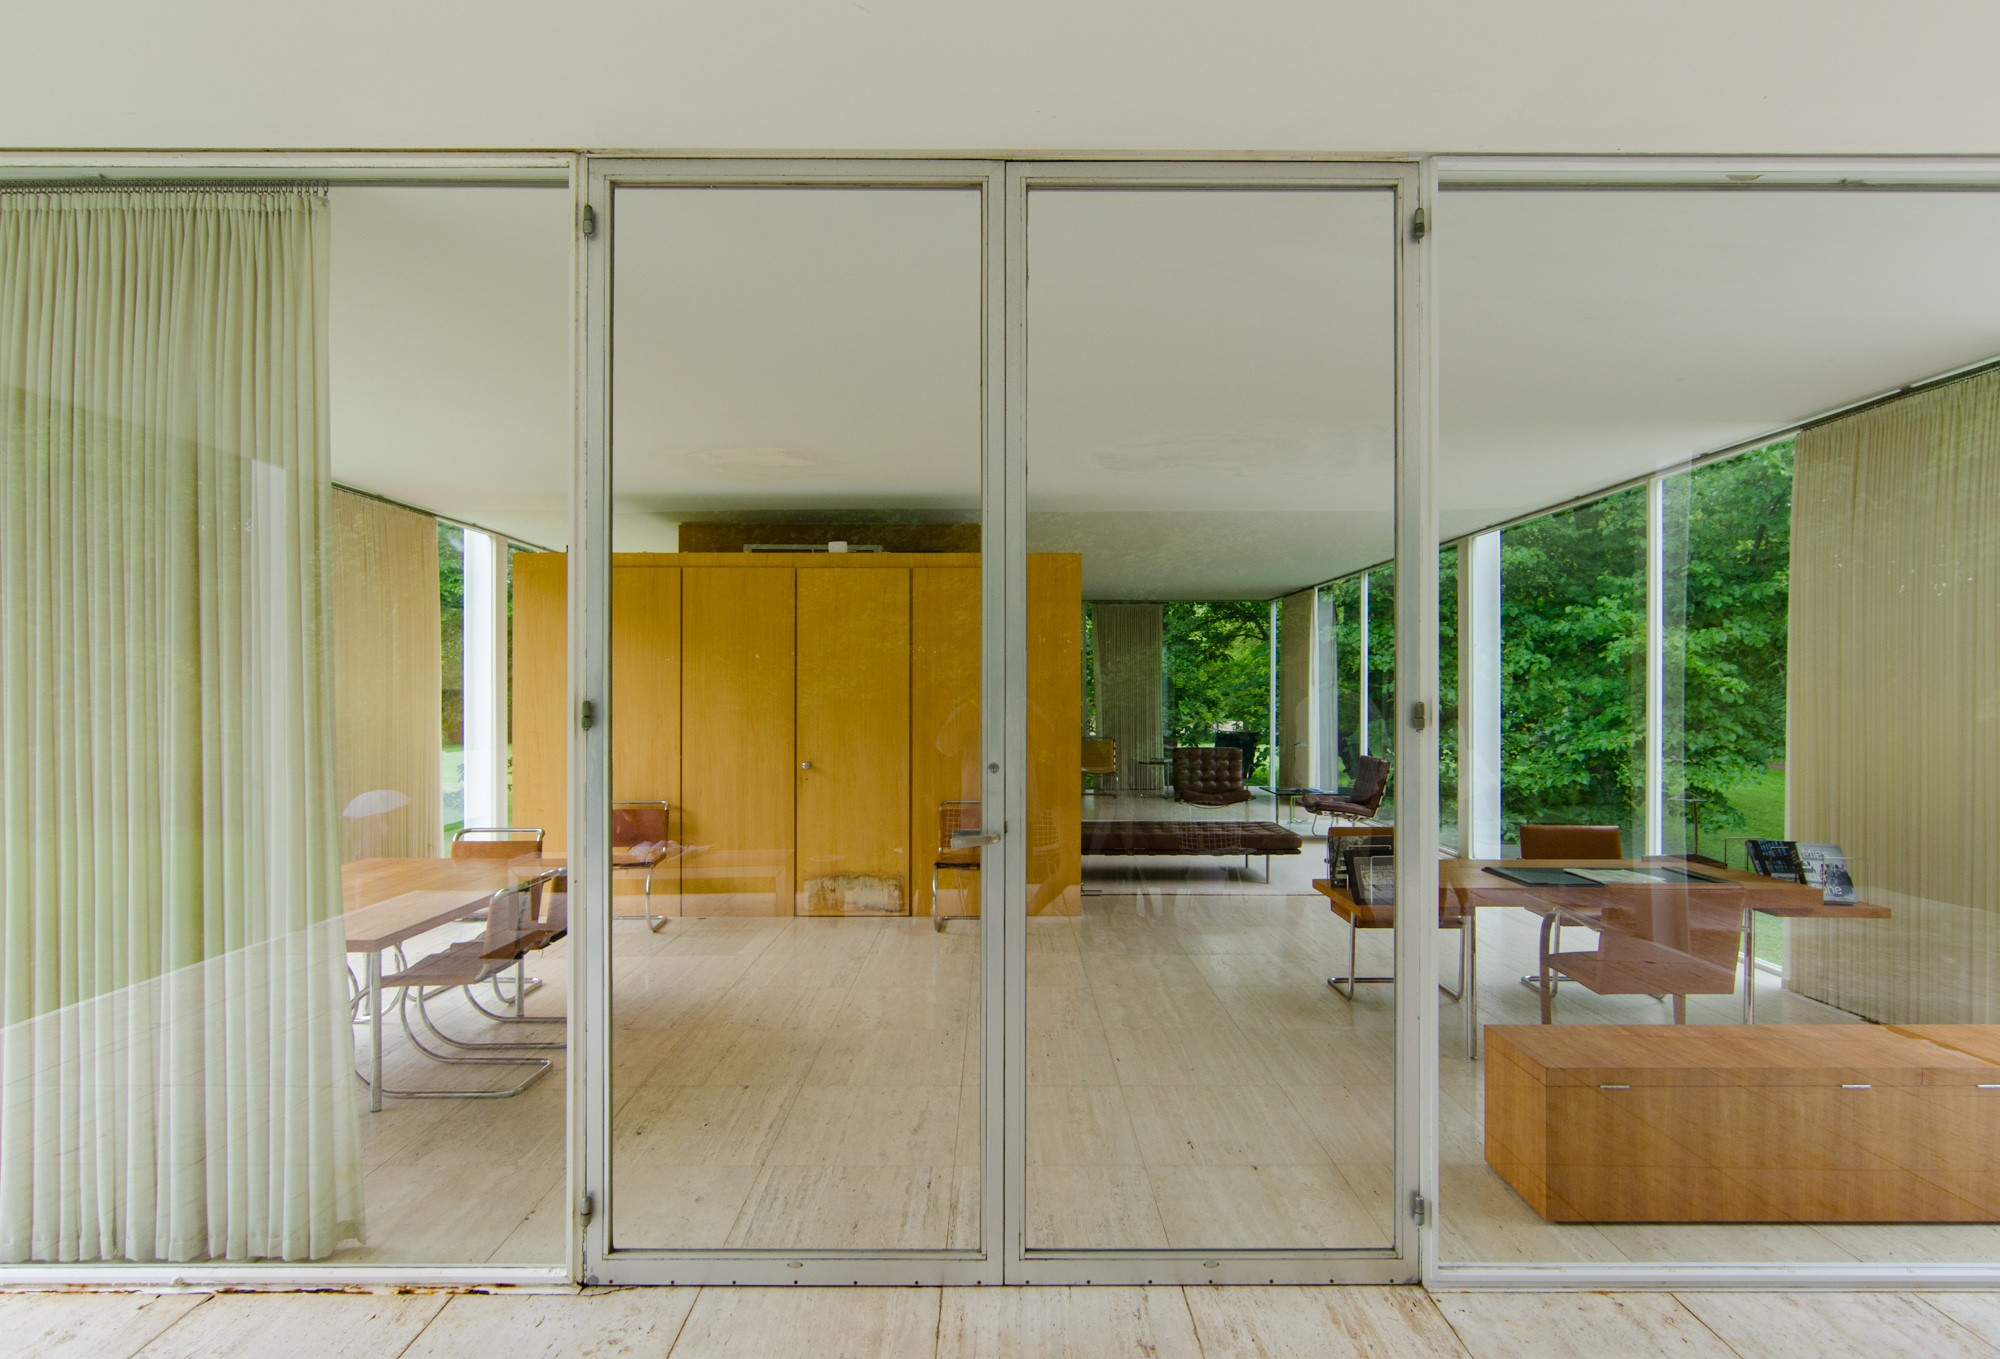 Farnsworth House · Buildings of Chicago · Chicago Architecture ...